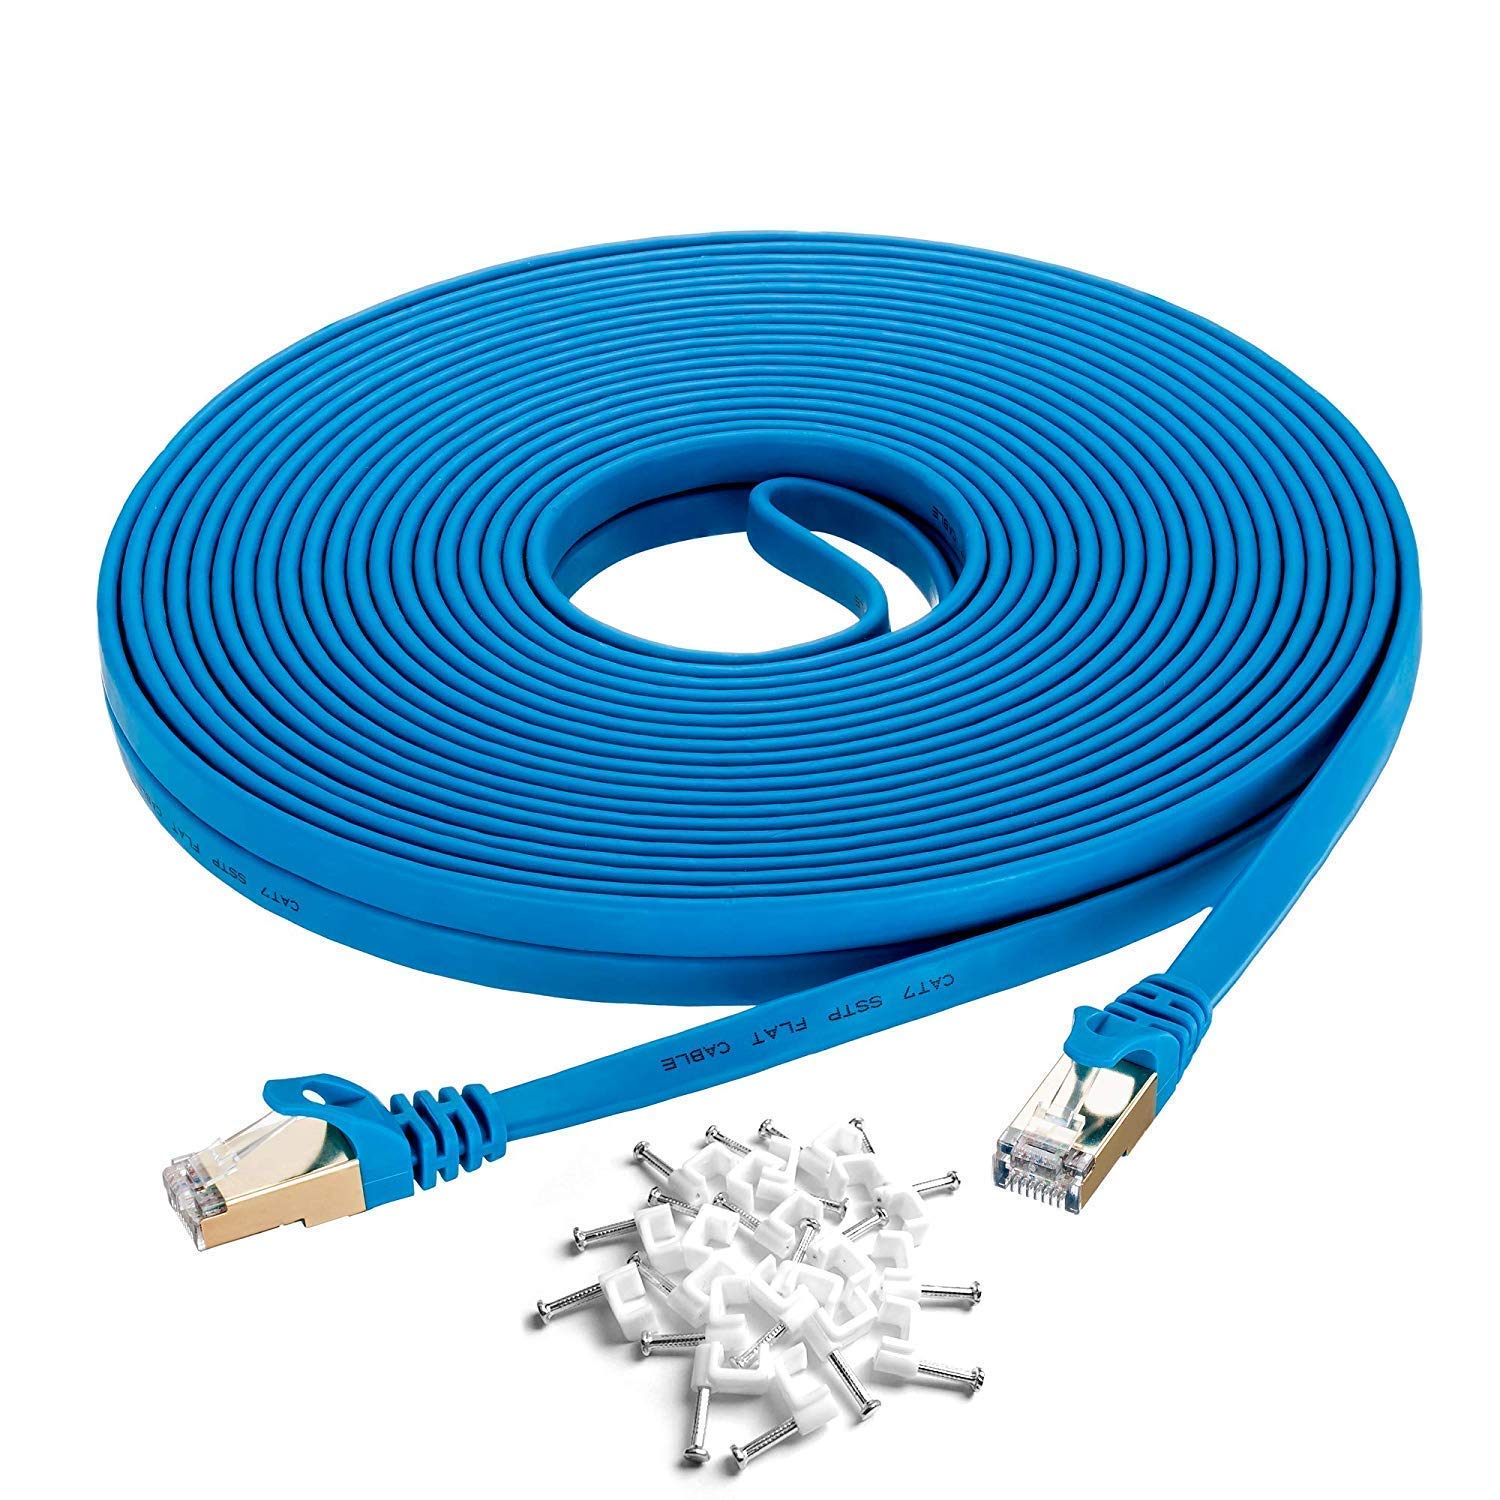 Cat 7 Ethernet Cable 15 ft Blue, SNANSHI Cat7 Flat Ethernet Patch Cables - Internet Cable with Clips & Shielded RJ45 Connectors Compatible with Switch/Router/Modem/Patch Panel